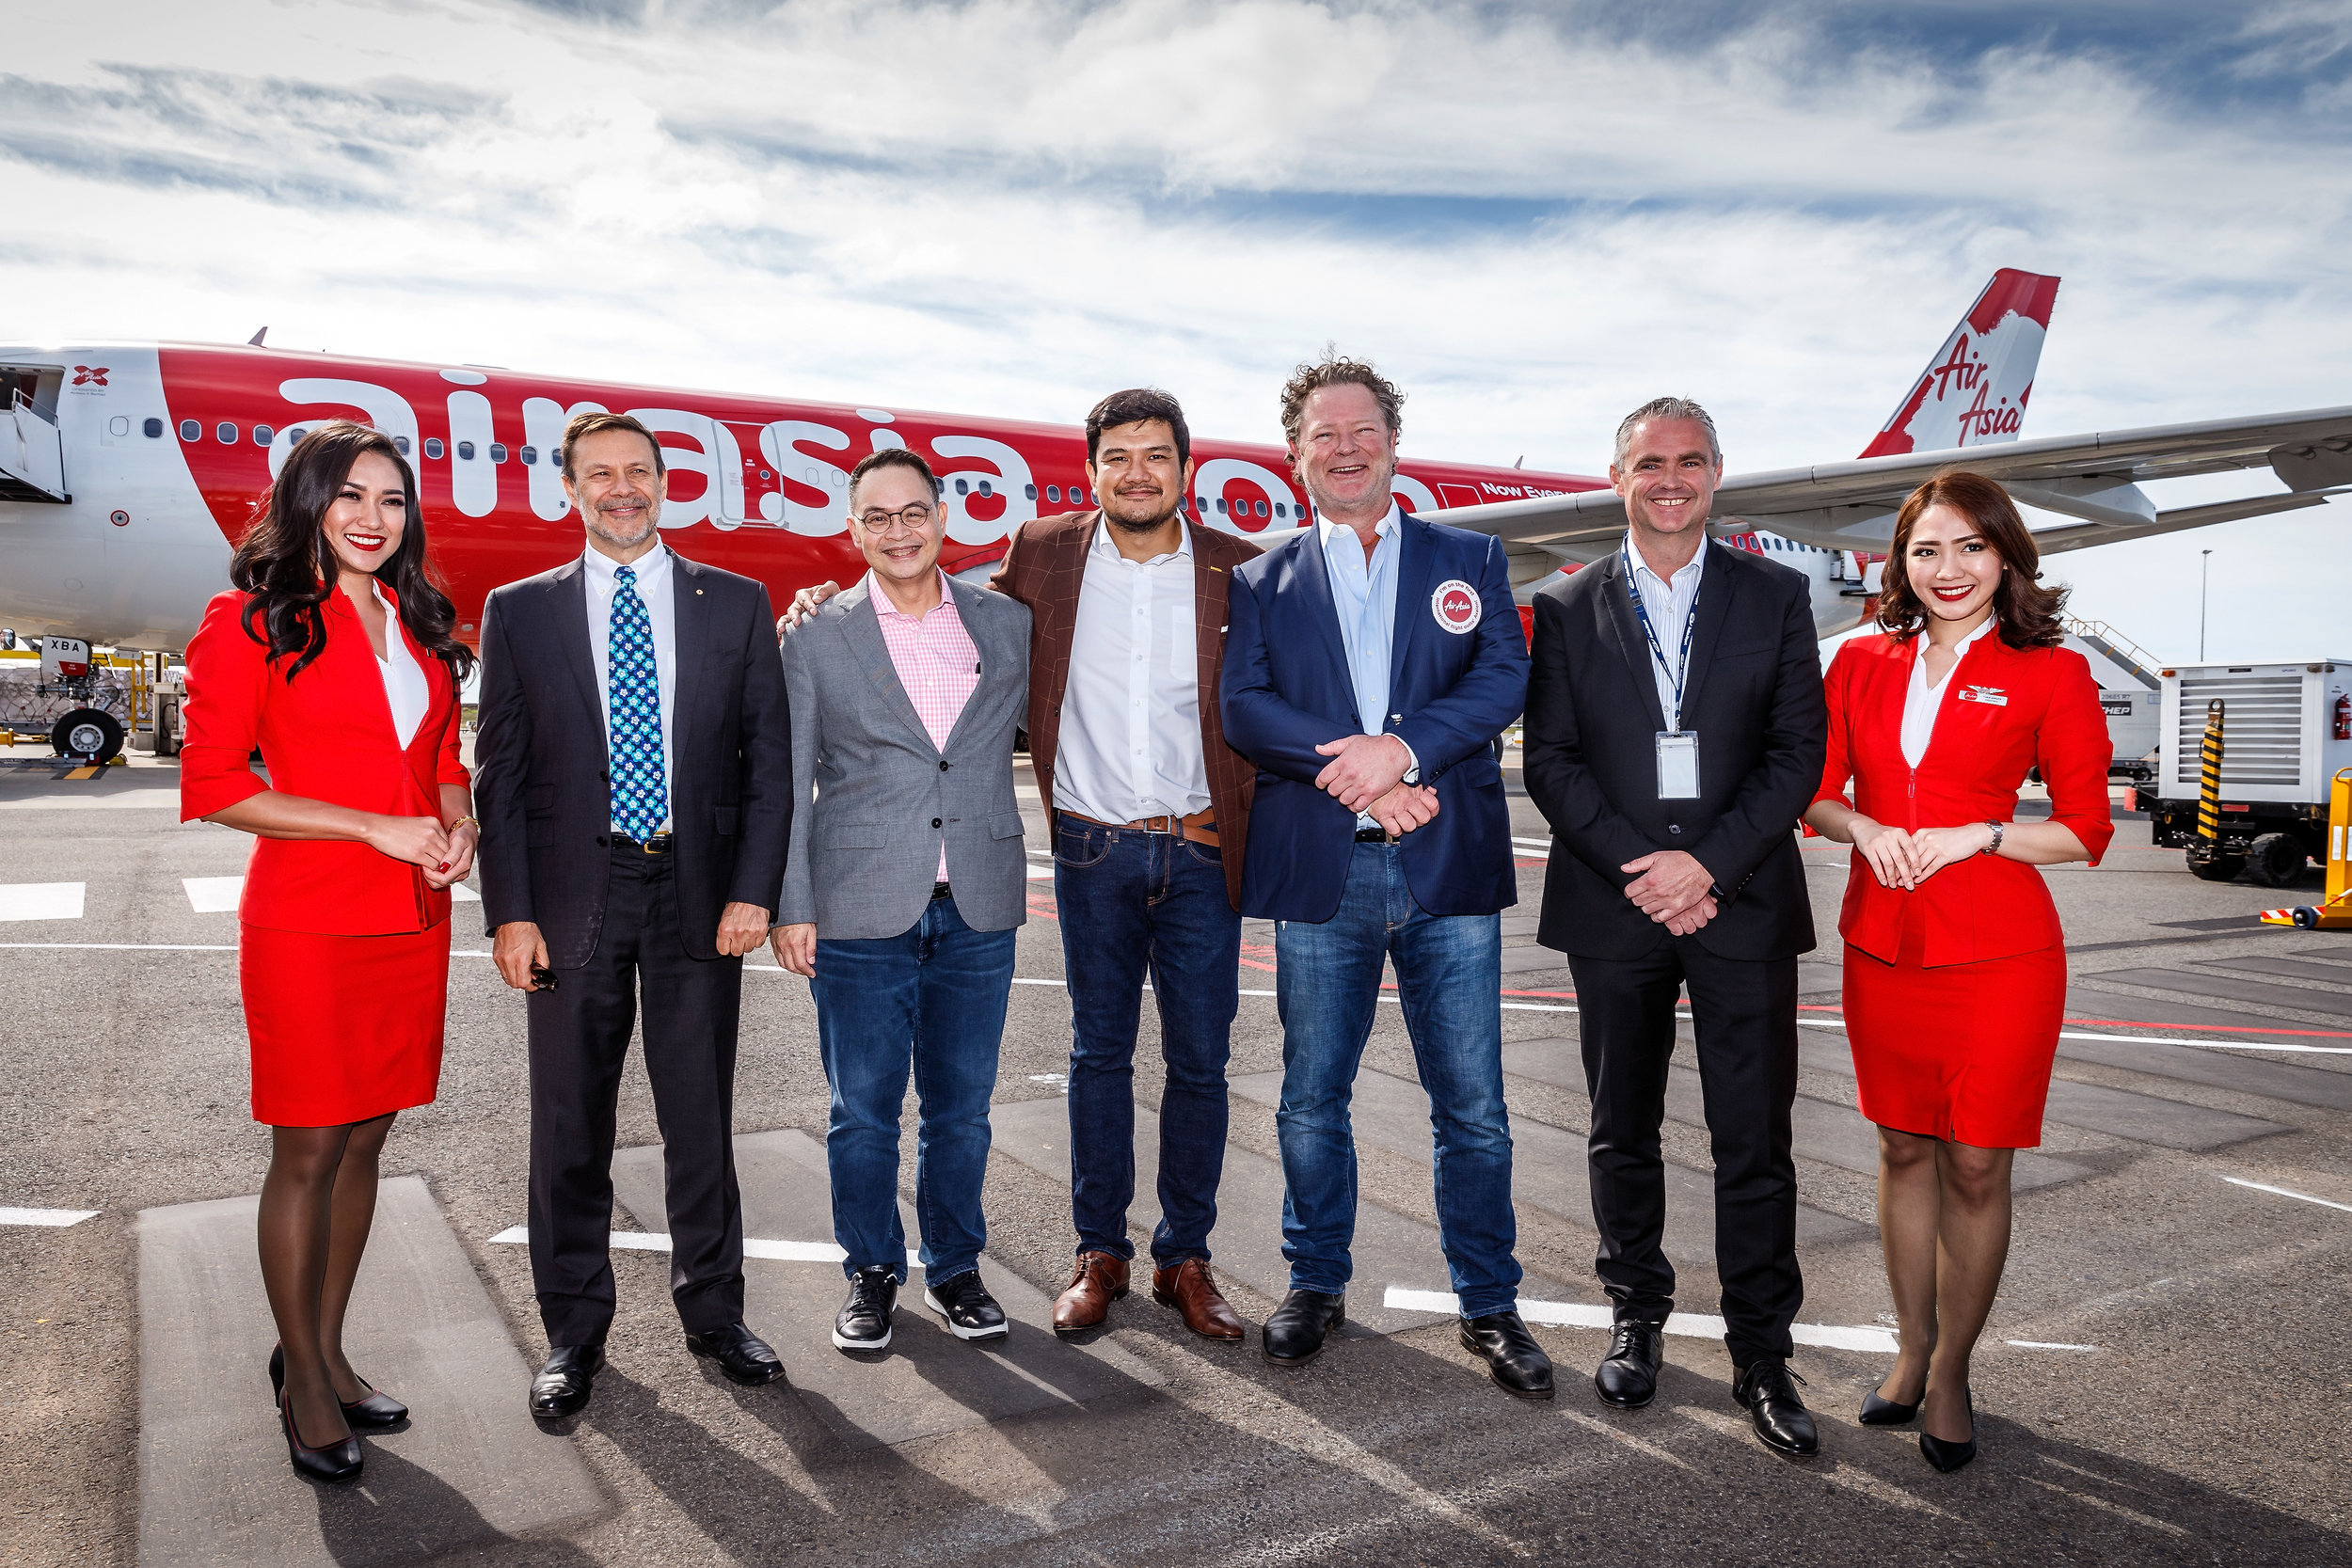 Photo caption: (L-R) Australian High Commissioner to Malaysia HE Andrew Goledzinowski AM, Group CEO AirAsia X Nadda Buranasiri, CEO AirAsia X Malaysia Benyamin Ismail, Executive Chairman Linfox Airports David Fox and CEO Avalon Airport Justin Giddings flanked by cabin crew.